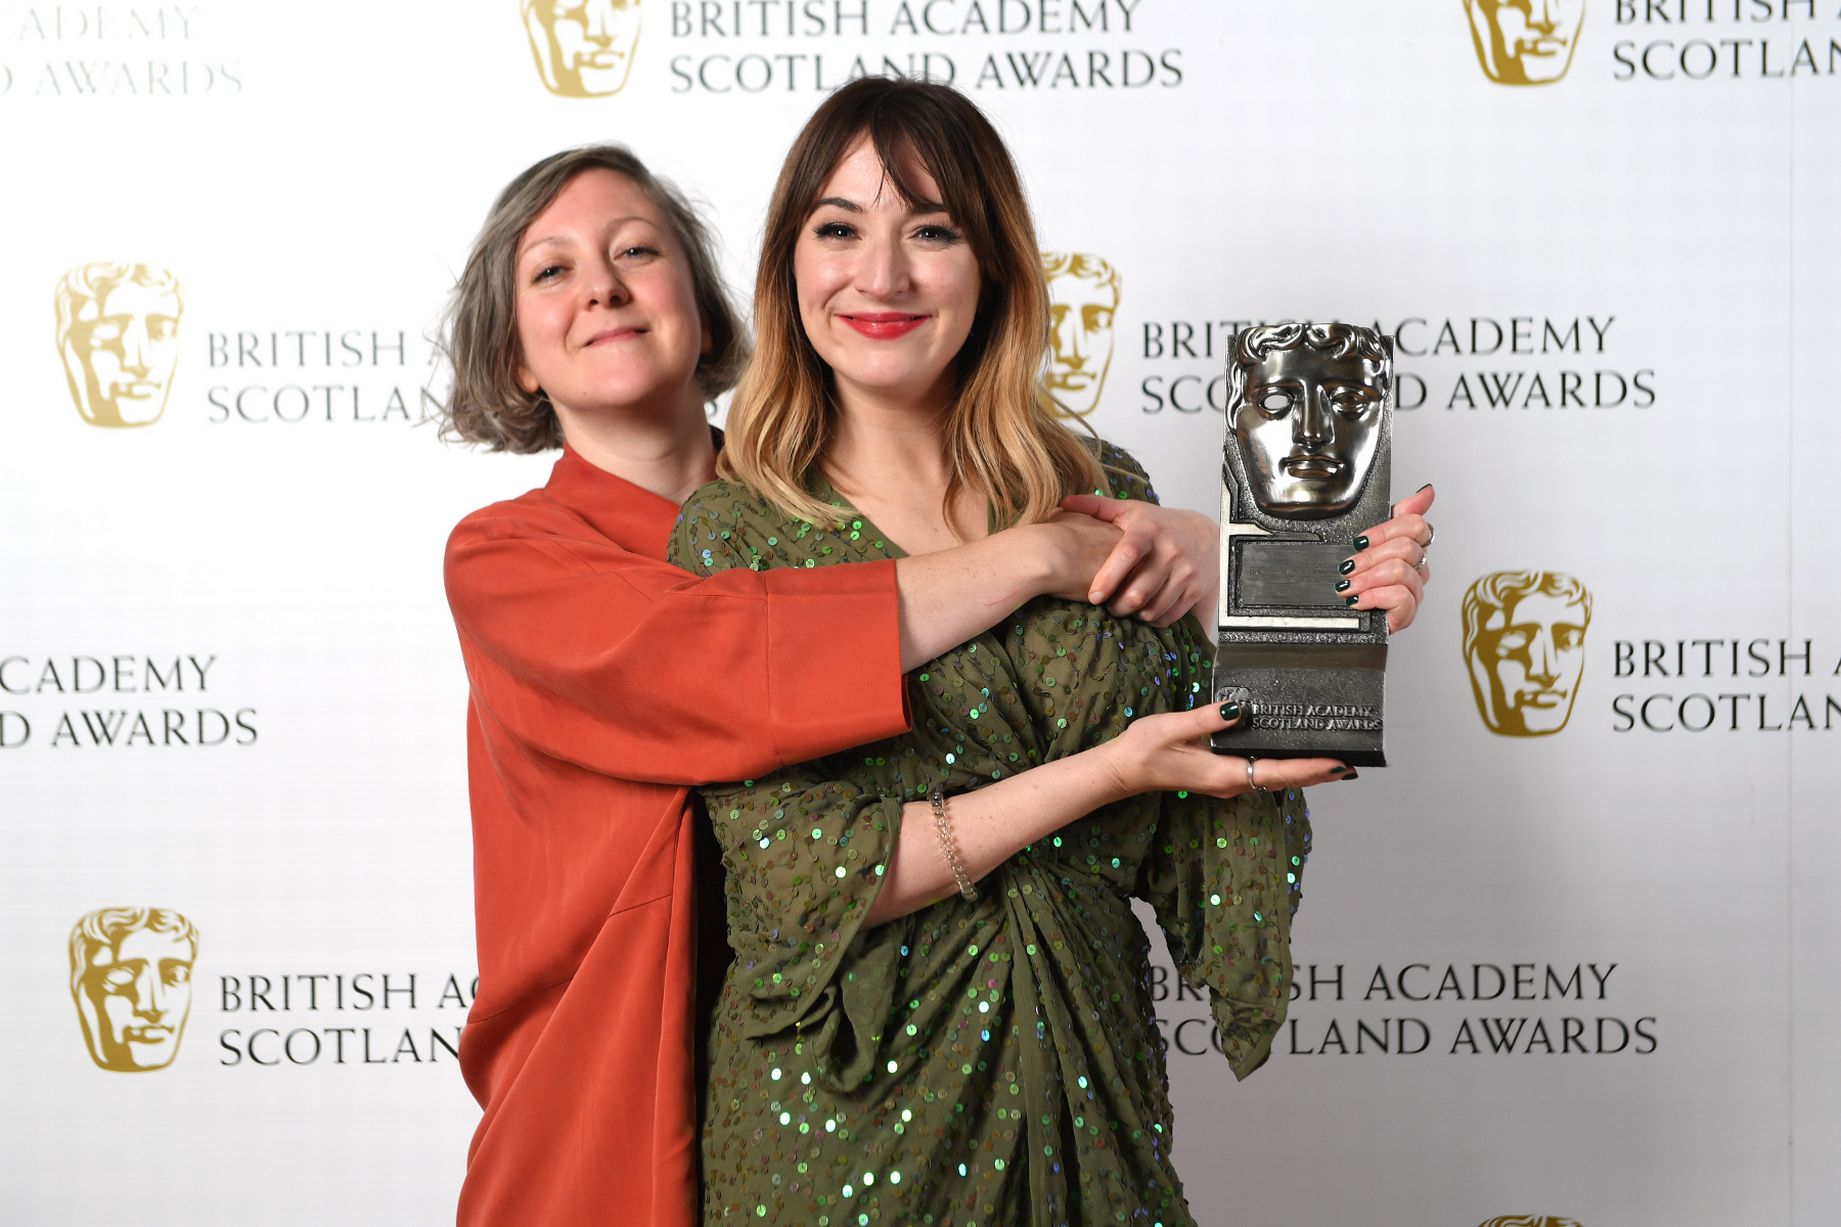 12 Scots to watch out for at this year's Baftas